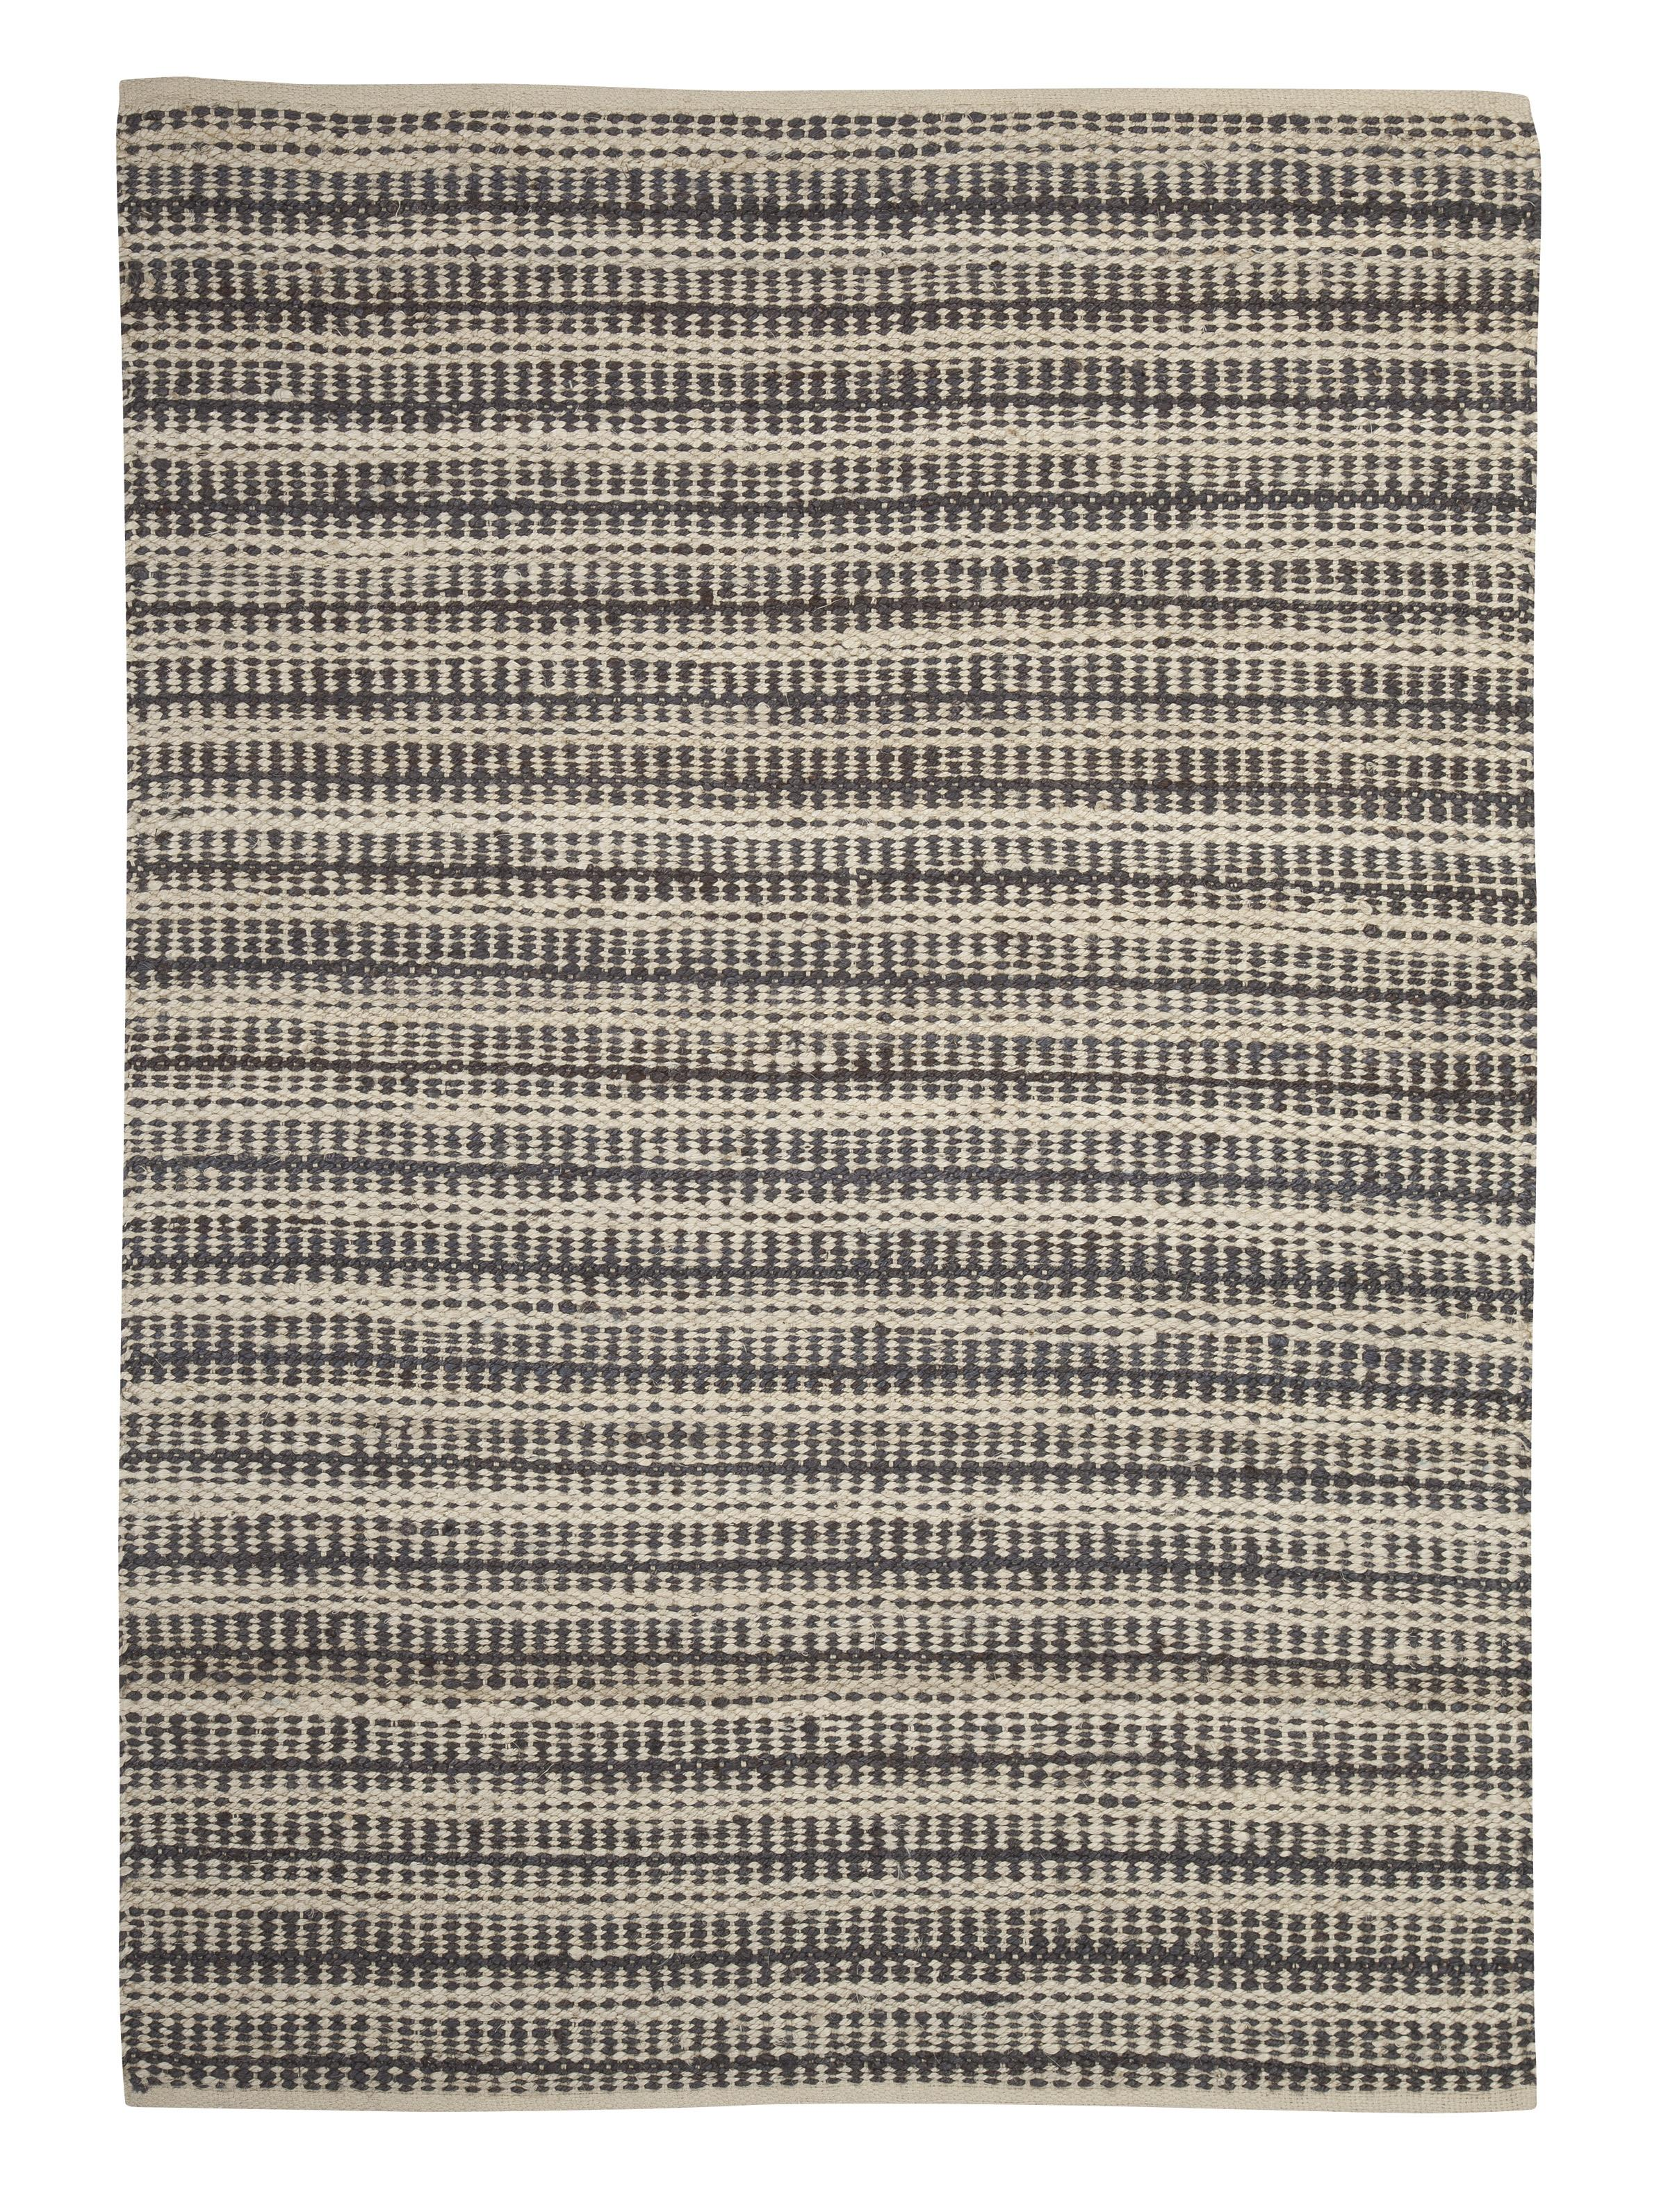 Signature Design by Ashley Transitional Area Rugs Chesney Tan/Gray Medium Rug - Item Number: R257002